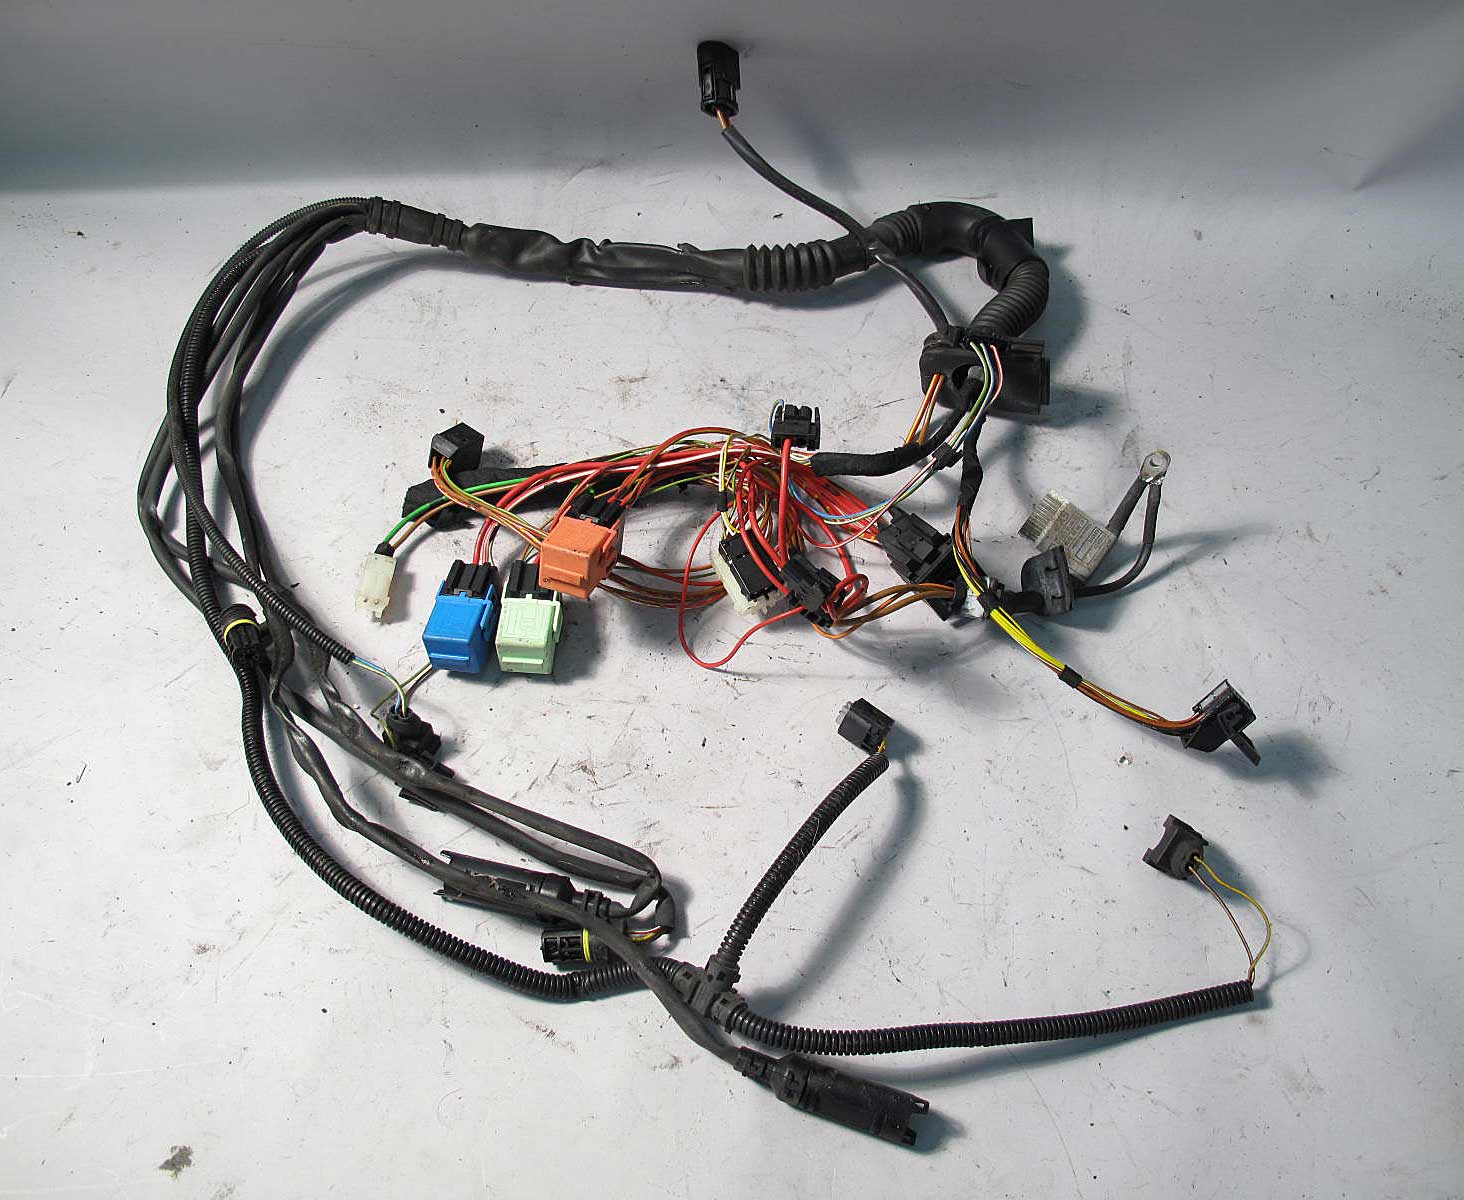 BMW Z3 2.3 2.8 Roadster Coupe Manual Transmission Wiring Harness 1999-2000  OEM